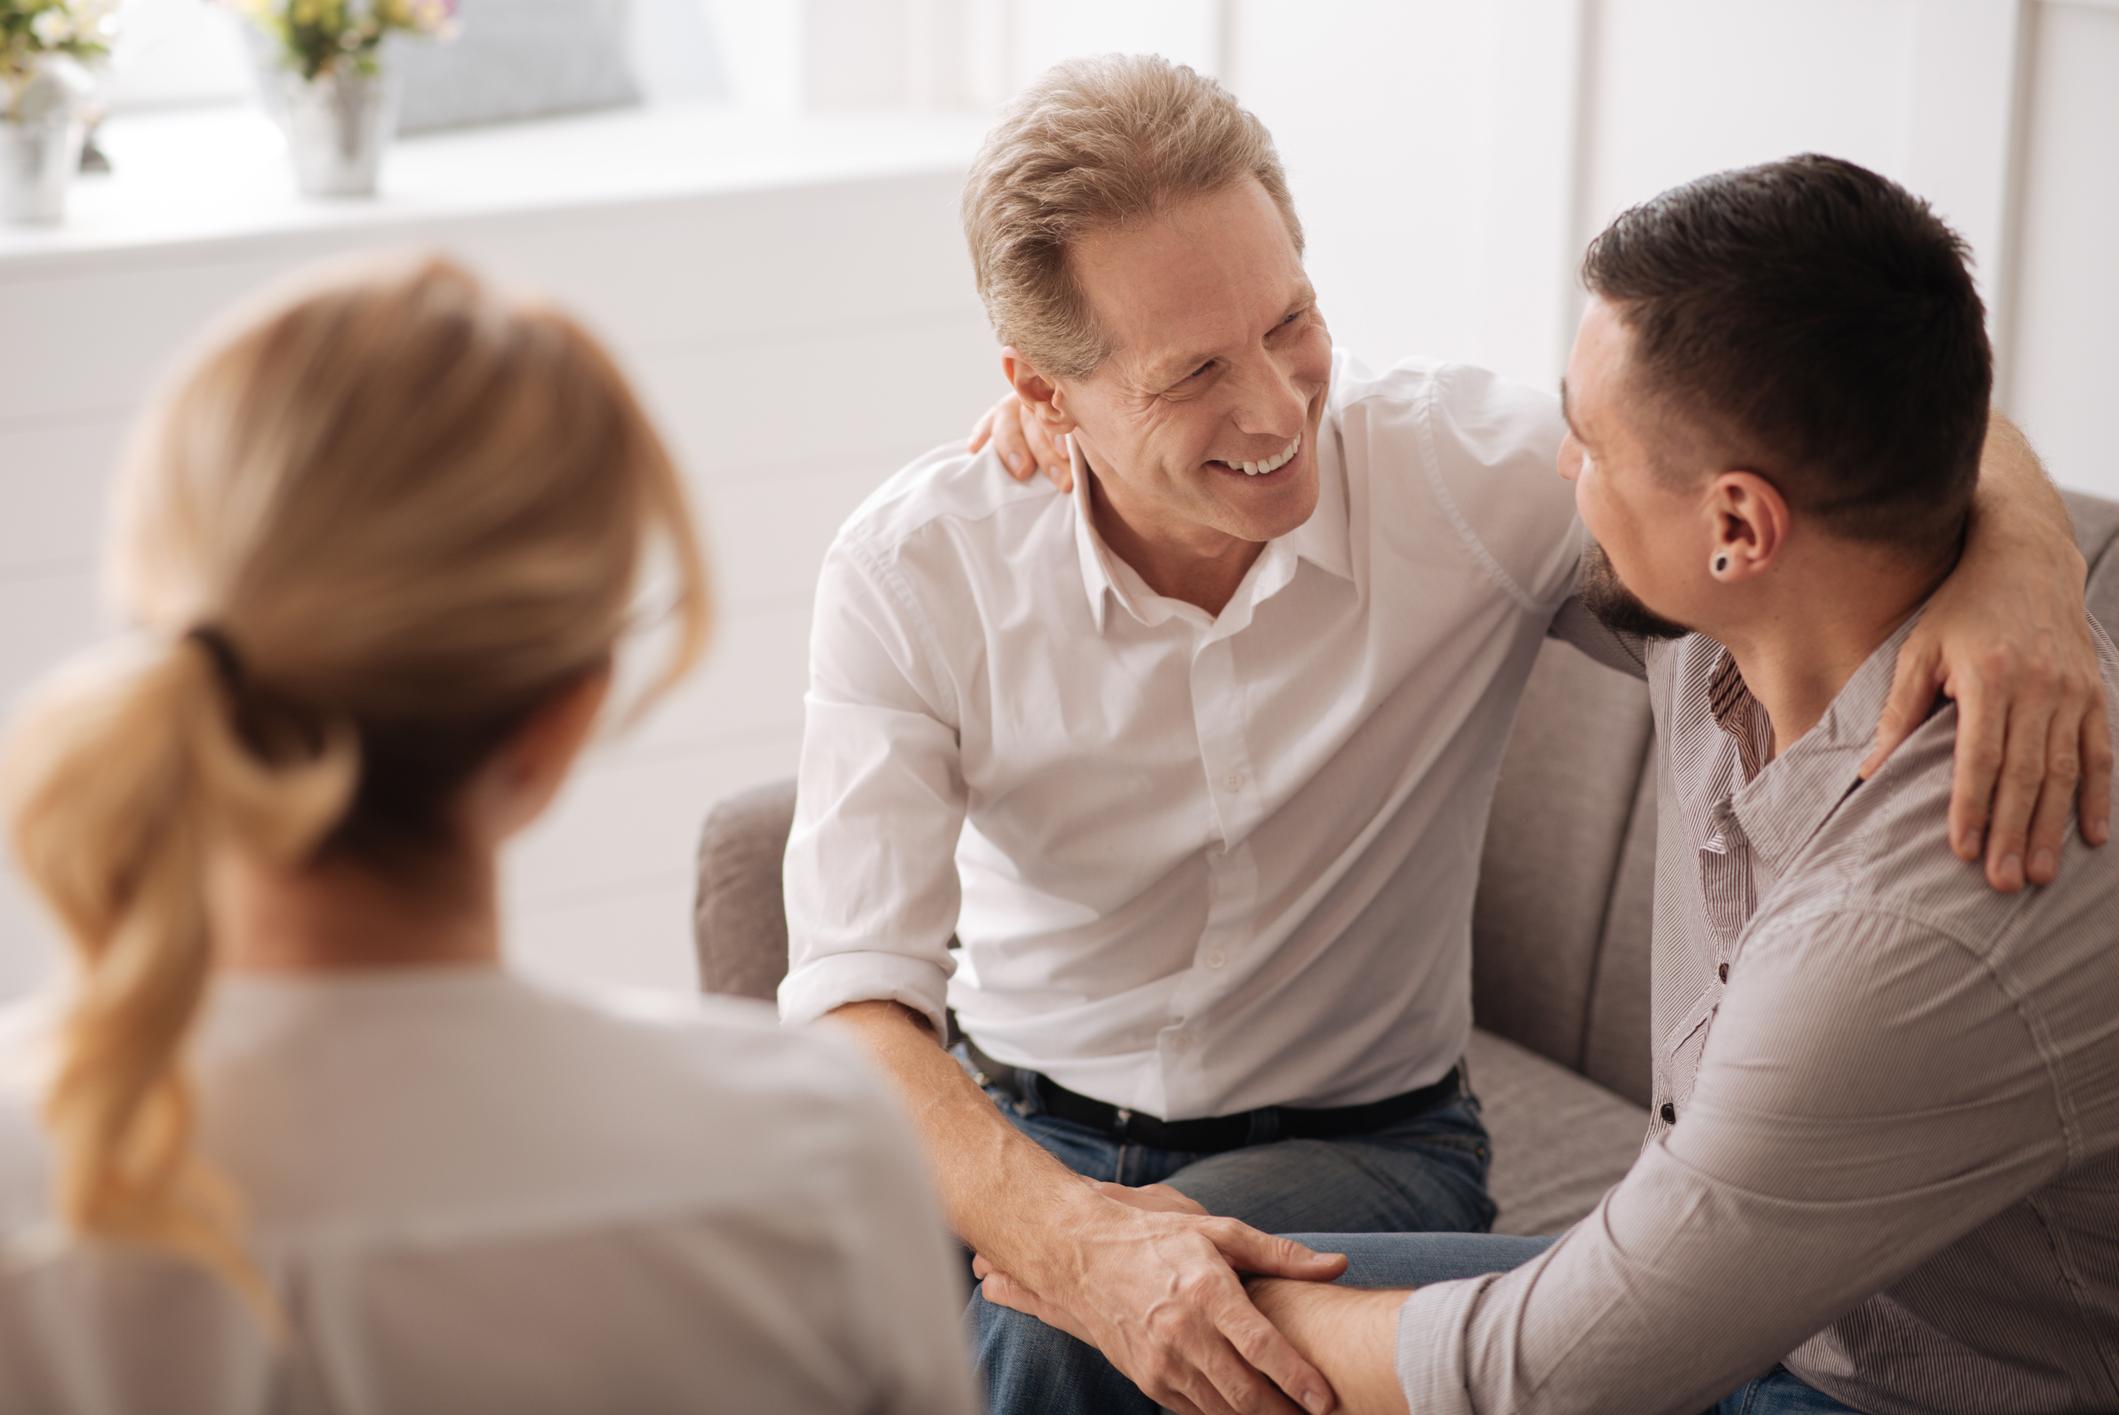 We Speak Relationship. - Our San Francisco Bay Area's Couples Counselors & Sex Therapists are highly specialized and selected for their areas of expertise & experience.